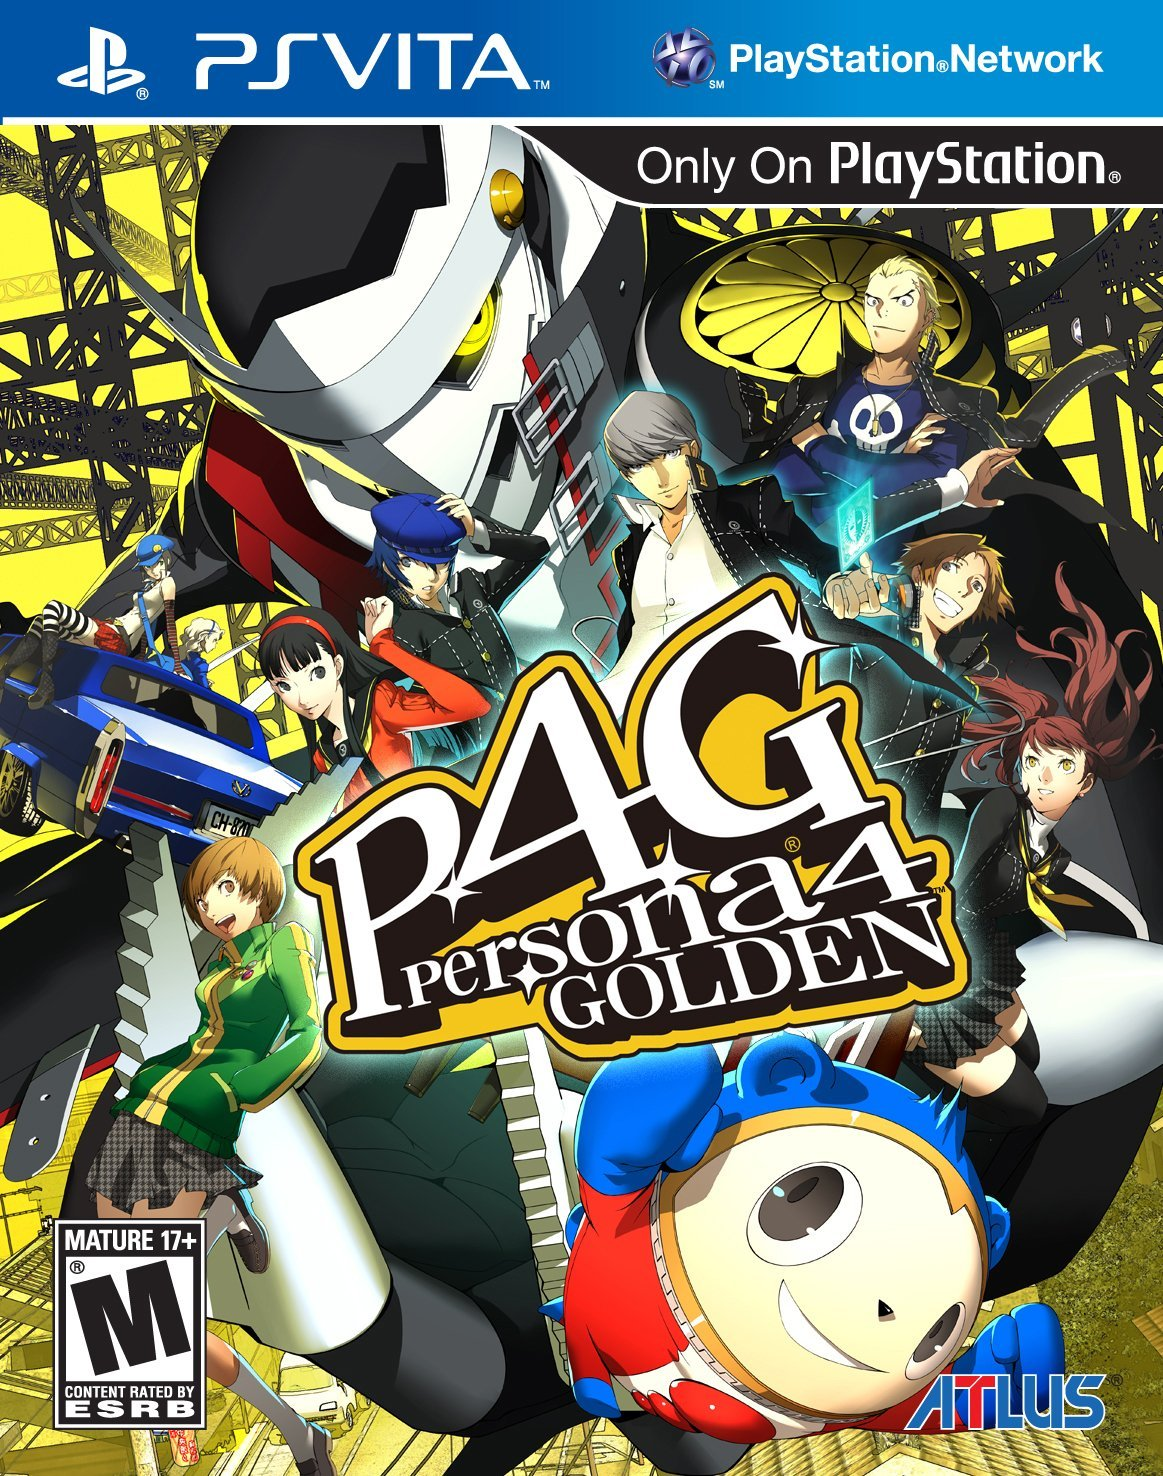 Persona 4 Golden full game free pc, download, play  download Persona